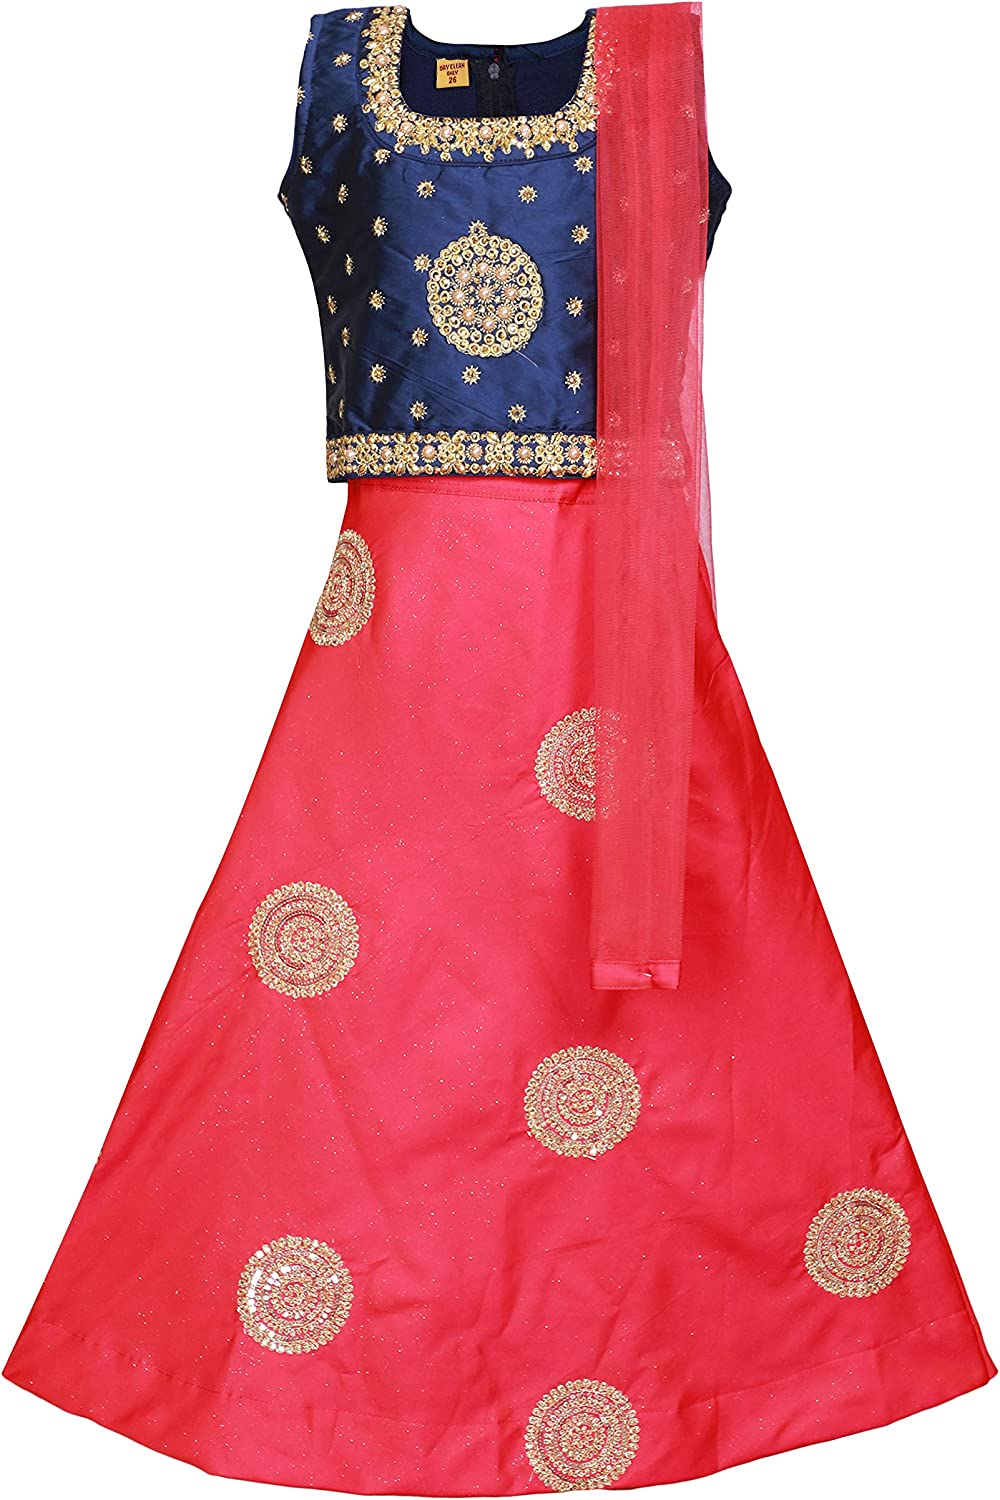 Ashwini Girl Polyester Embroidery Salwar Suit with Neck Embroidery Work